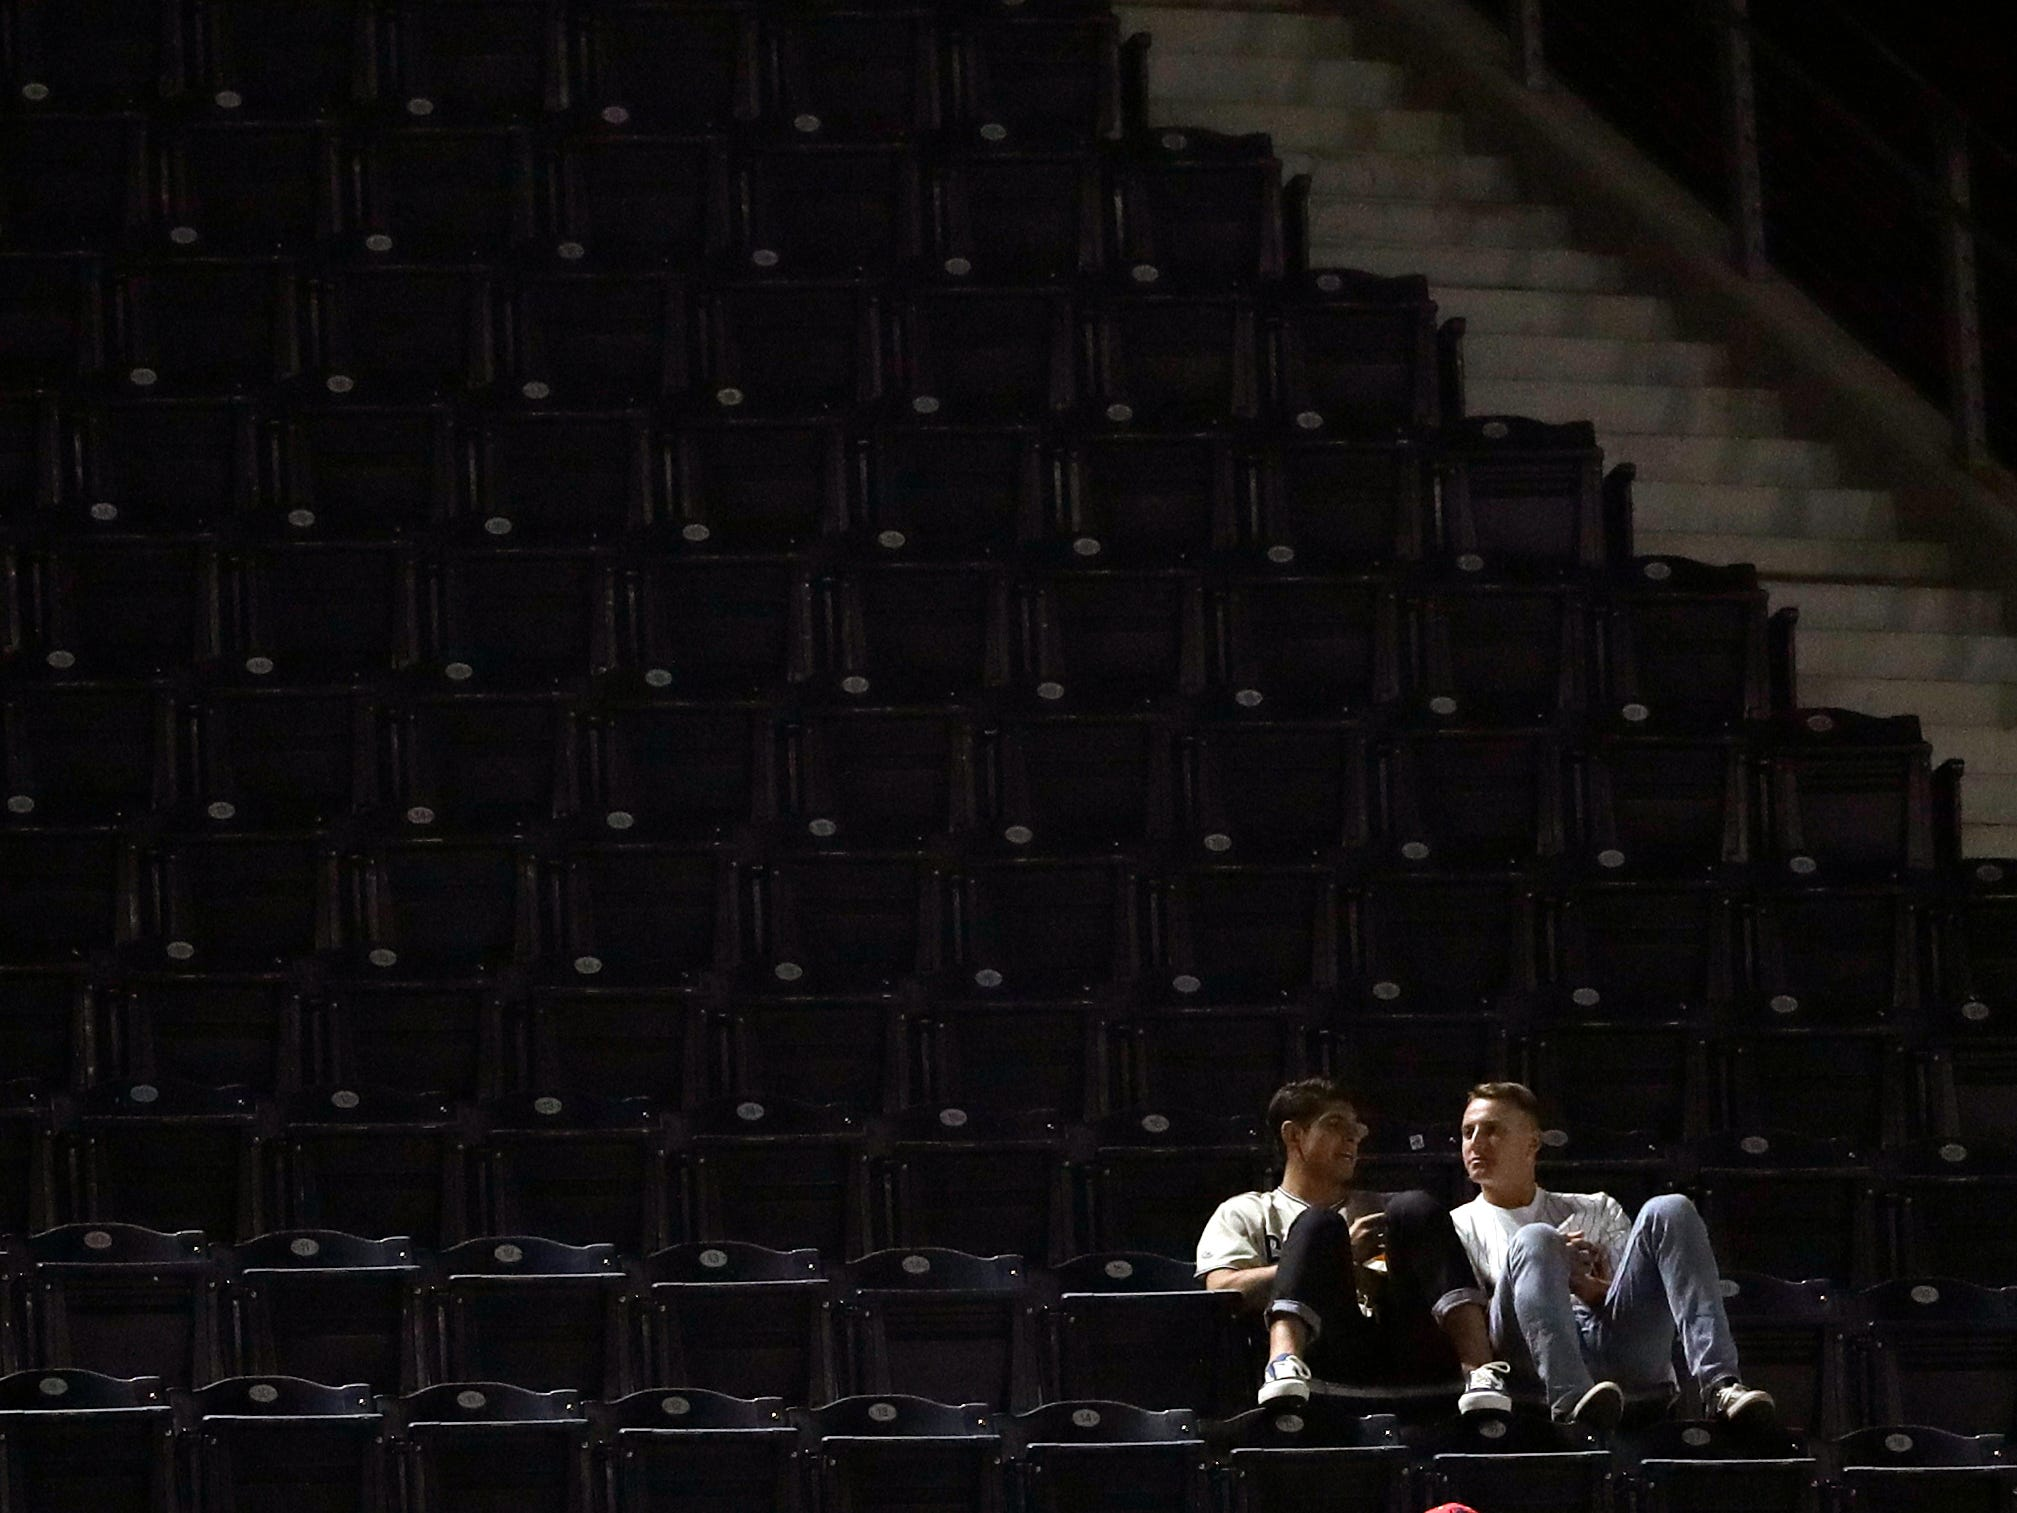 Two fans sit in otherwise empty stands as the San Diego Padres play the Arizona Diamondbacks in a baseball game Friday, Sept. 28, 2018, in San Diego. (AP Photo/Gregory Bull)